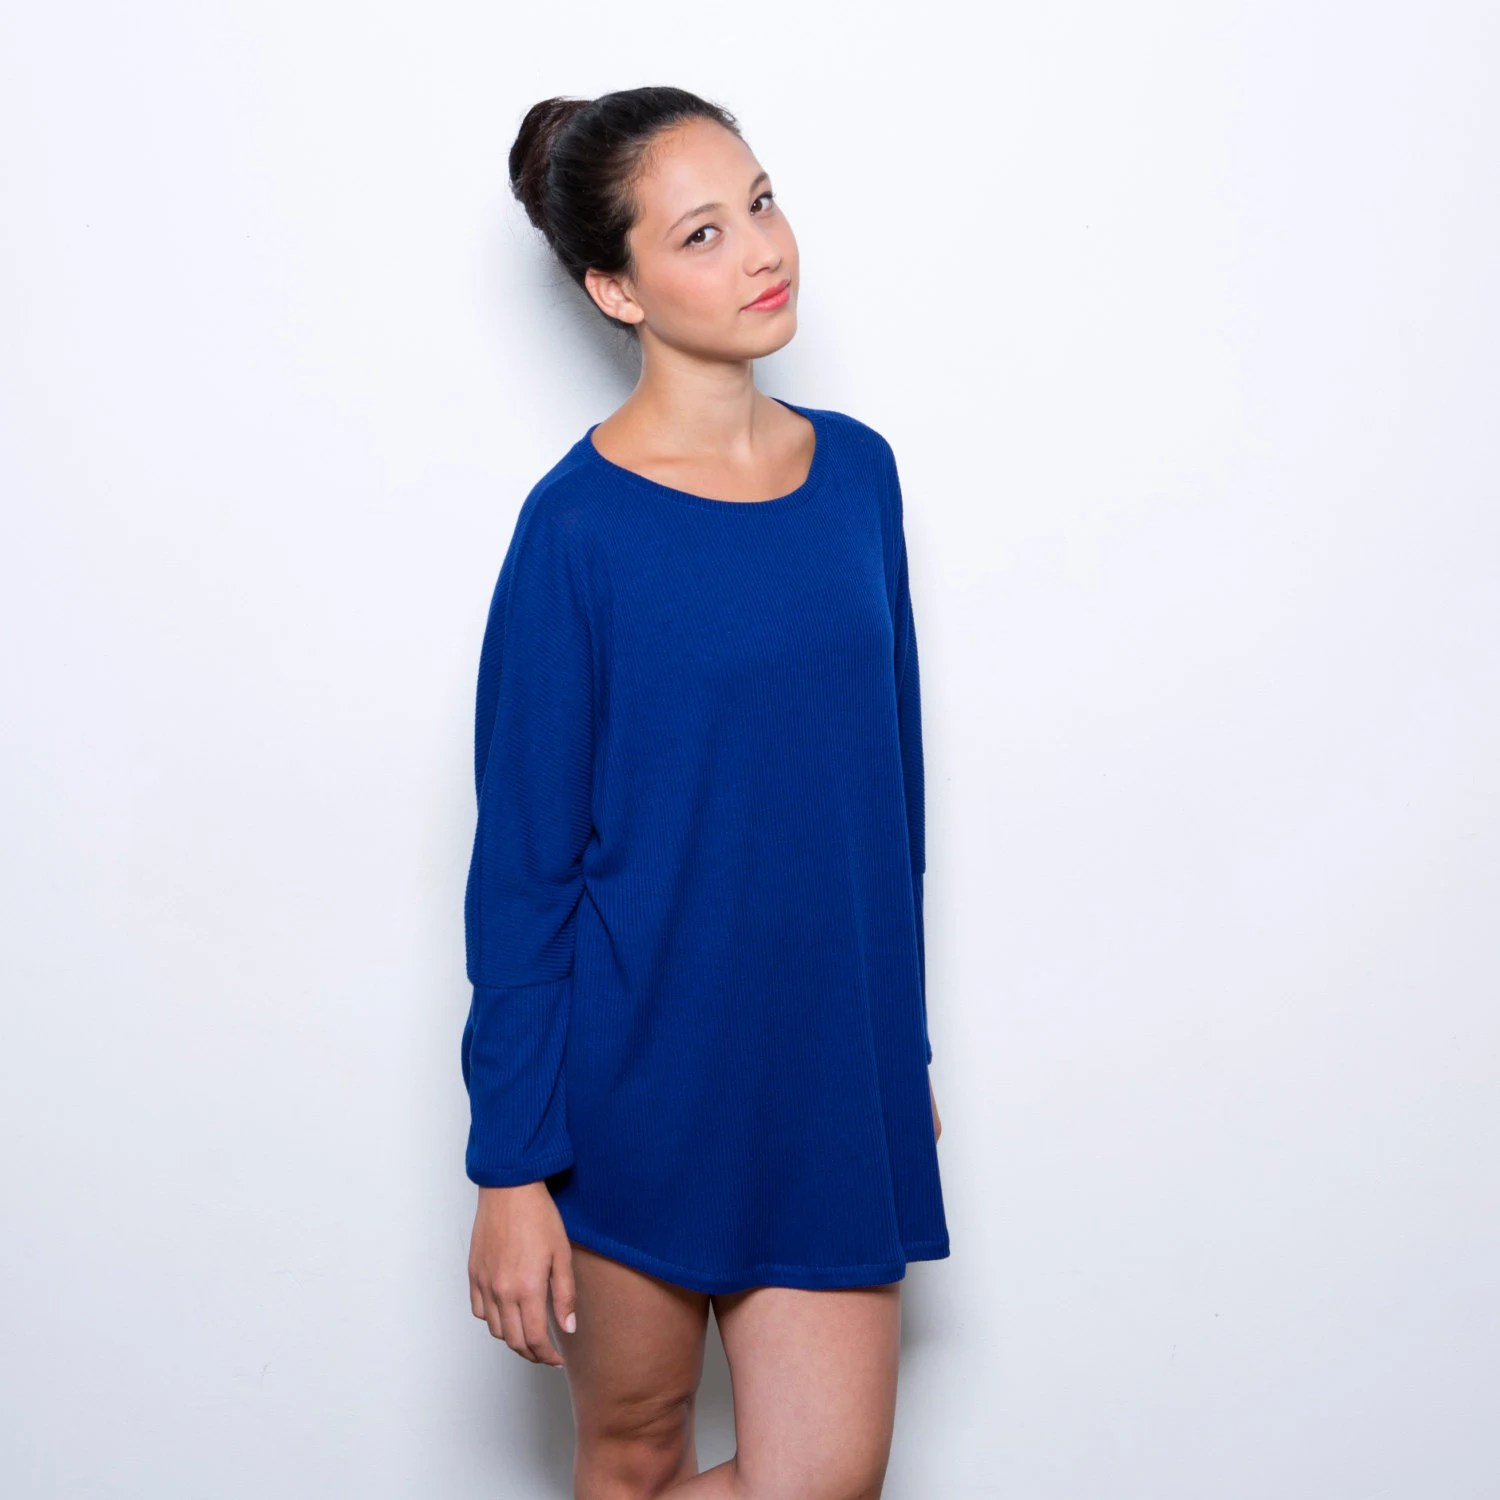 CIJ sale- Buy 2 get 1 for free, Blue tunic women oversize shirt, women blue top one size fits all - AndyVeEirn